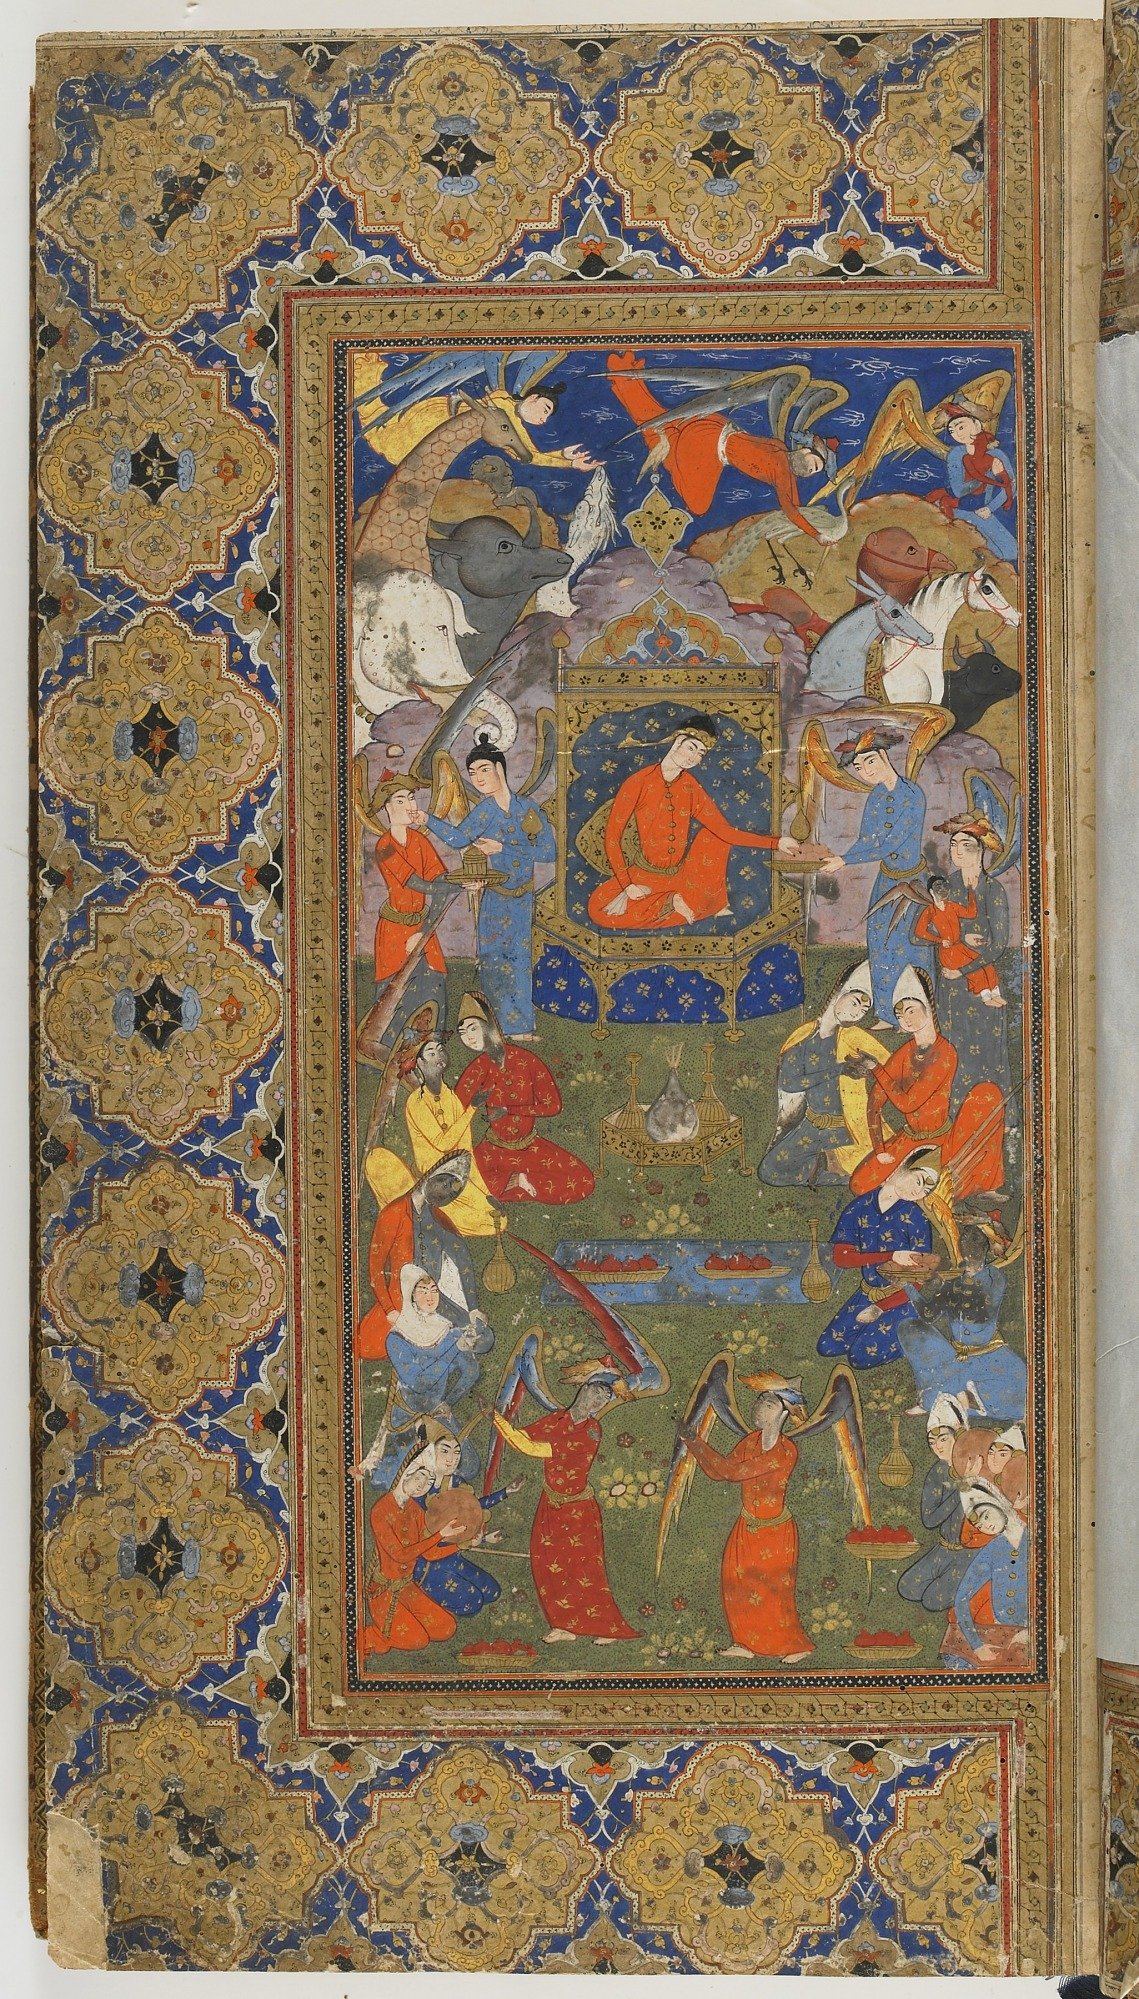 folio 3 recto: The Shahnama (Book of kings) by Firdausi (d. 1020)